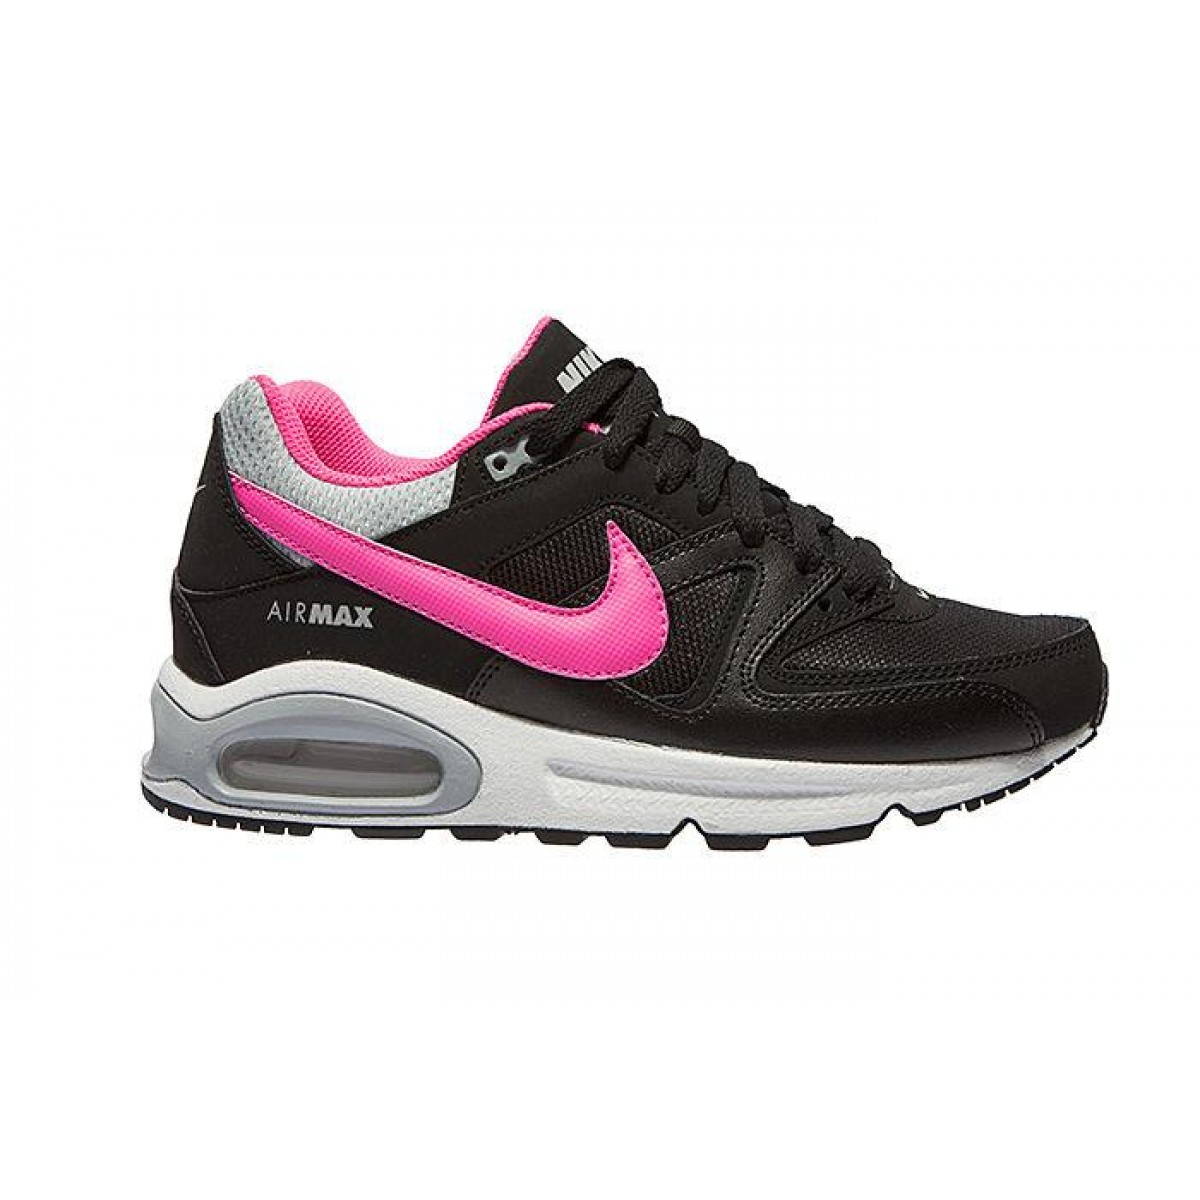 online store 1819b c7456 air max command femme pas cher. Chaussures ...